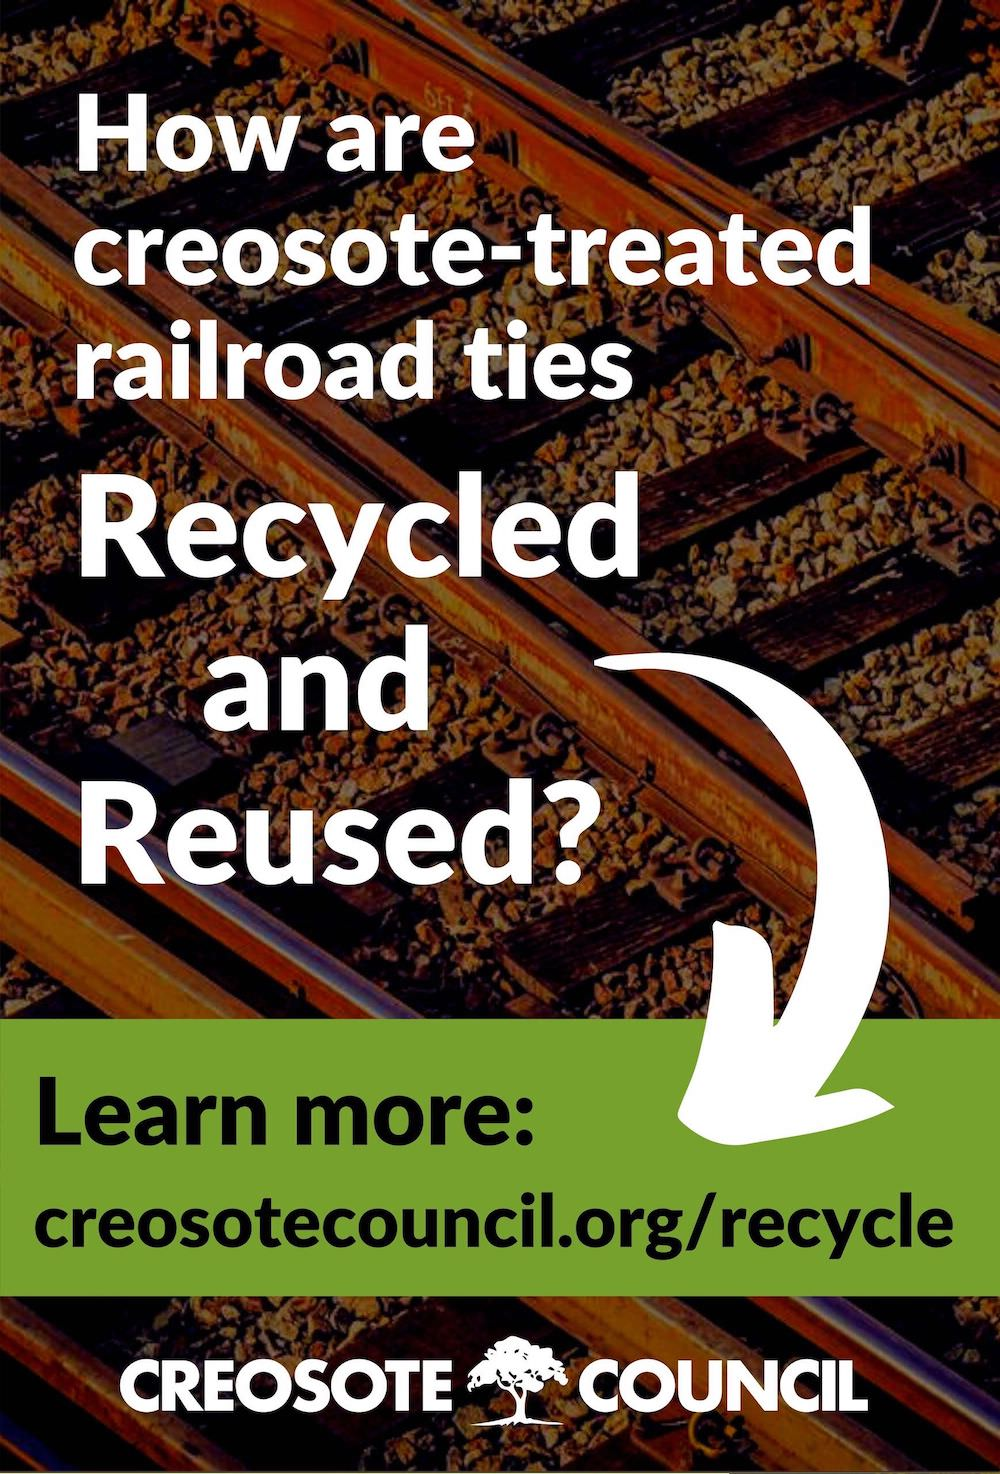 creosote council ad - recycling and reuse of railroad crossties